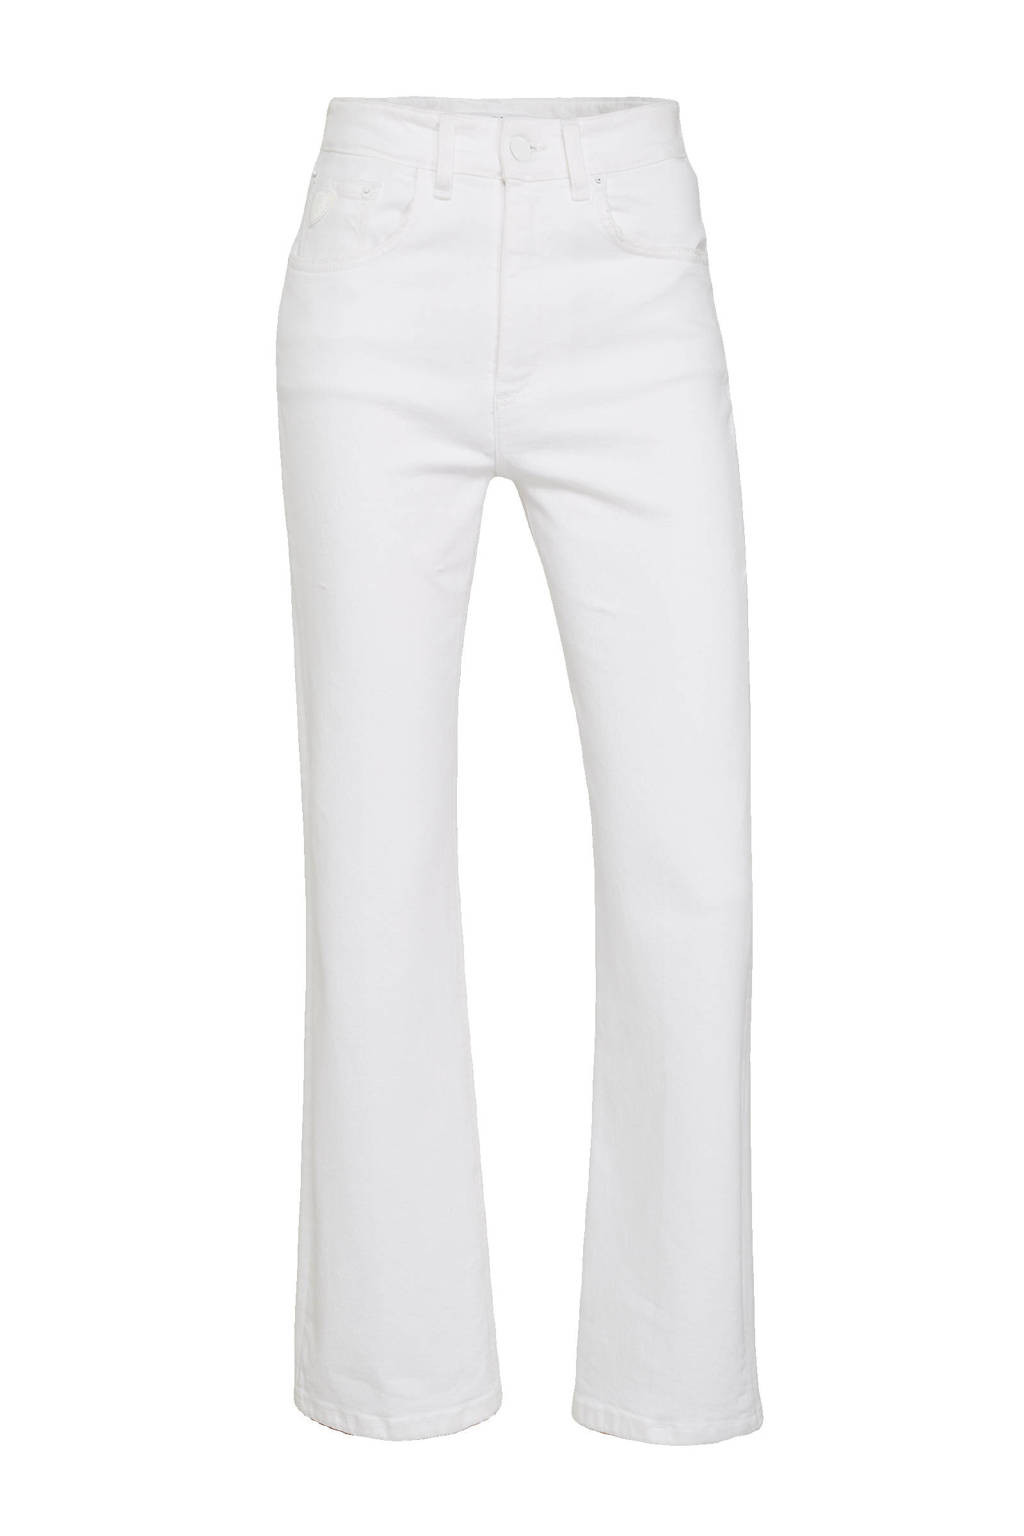 Lois high waist straight fit jeans 2628 River 6386 Nicci White rinse, Rinse